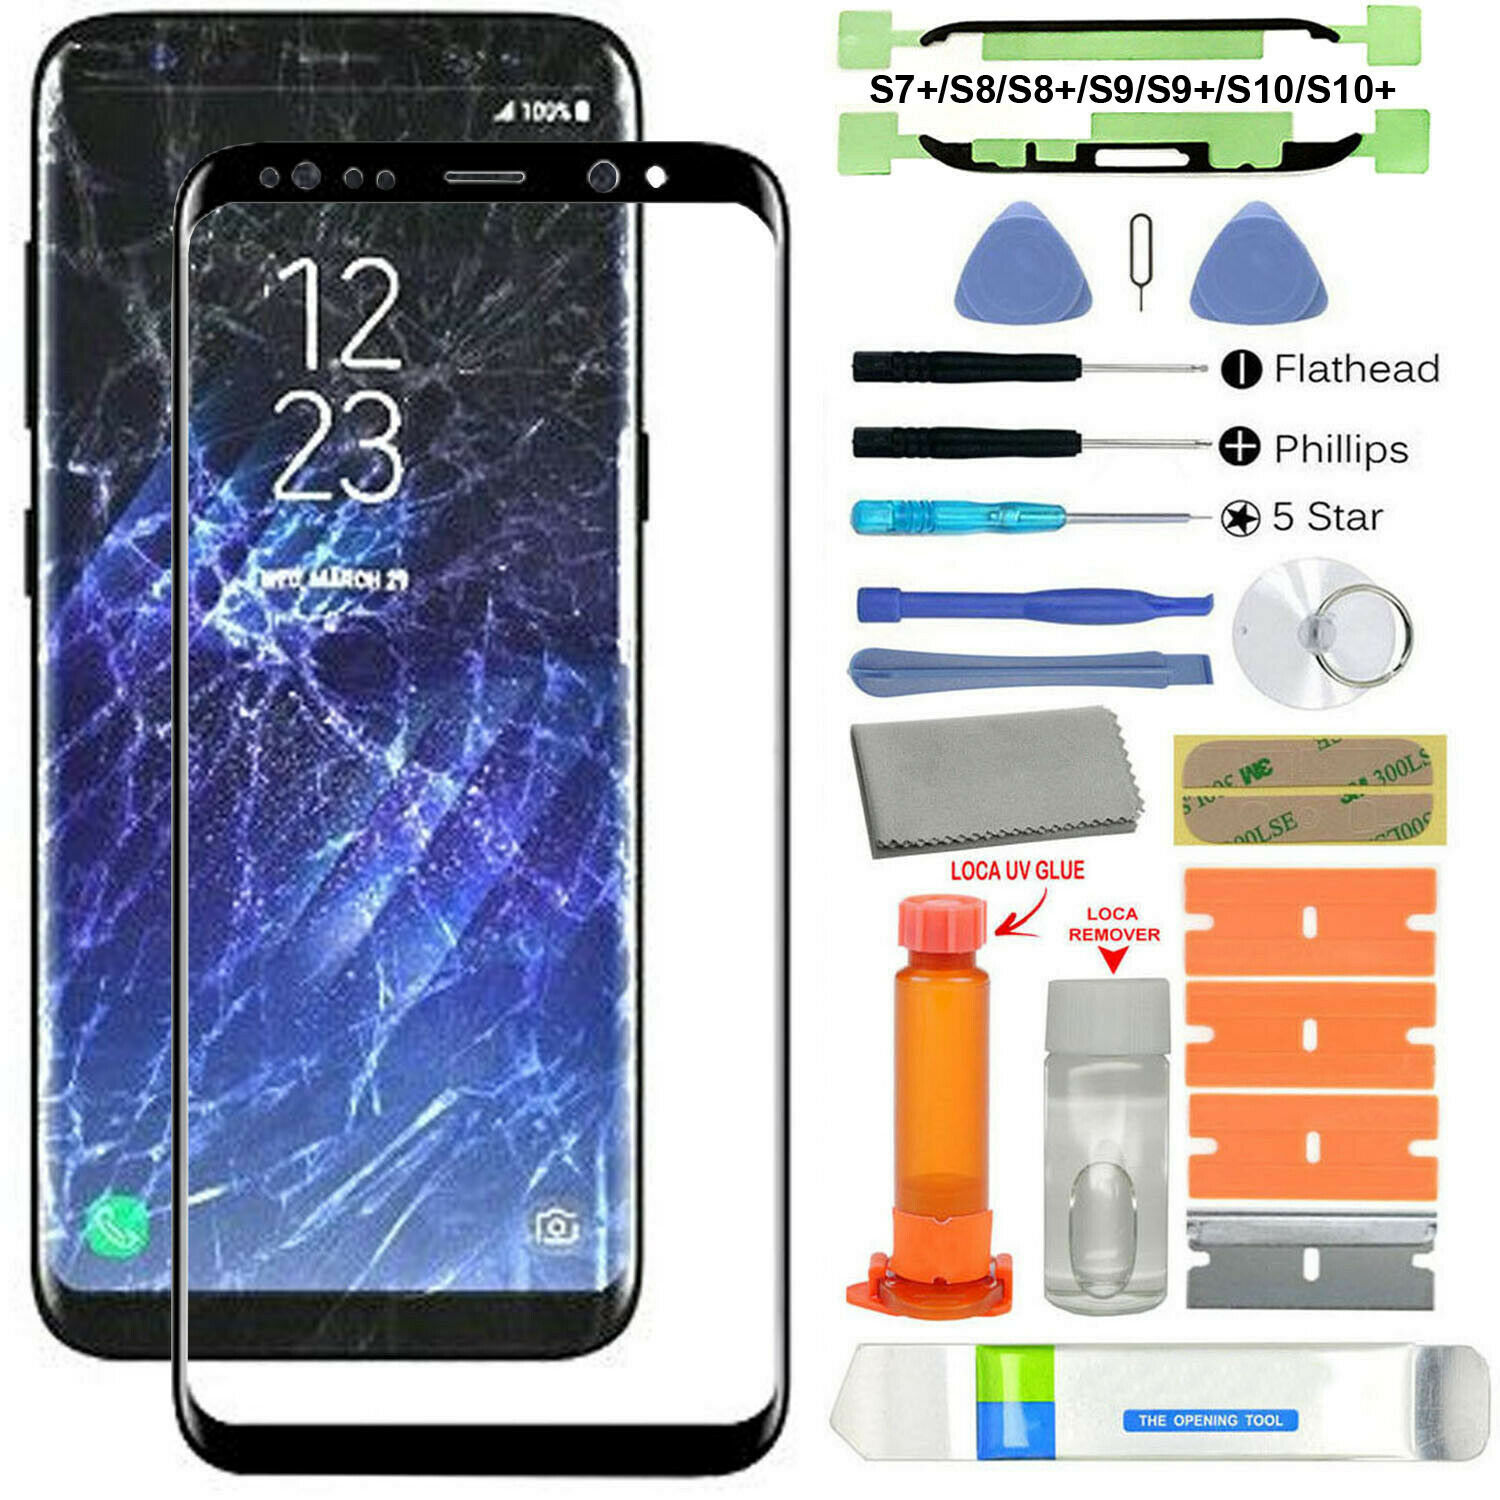 Front Screen Lens Back Glass Replacement Mobile Phone Repair Kit For Samsung Galaxy S7+/S8/S8+/S9/S9+/S10/S10+